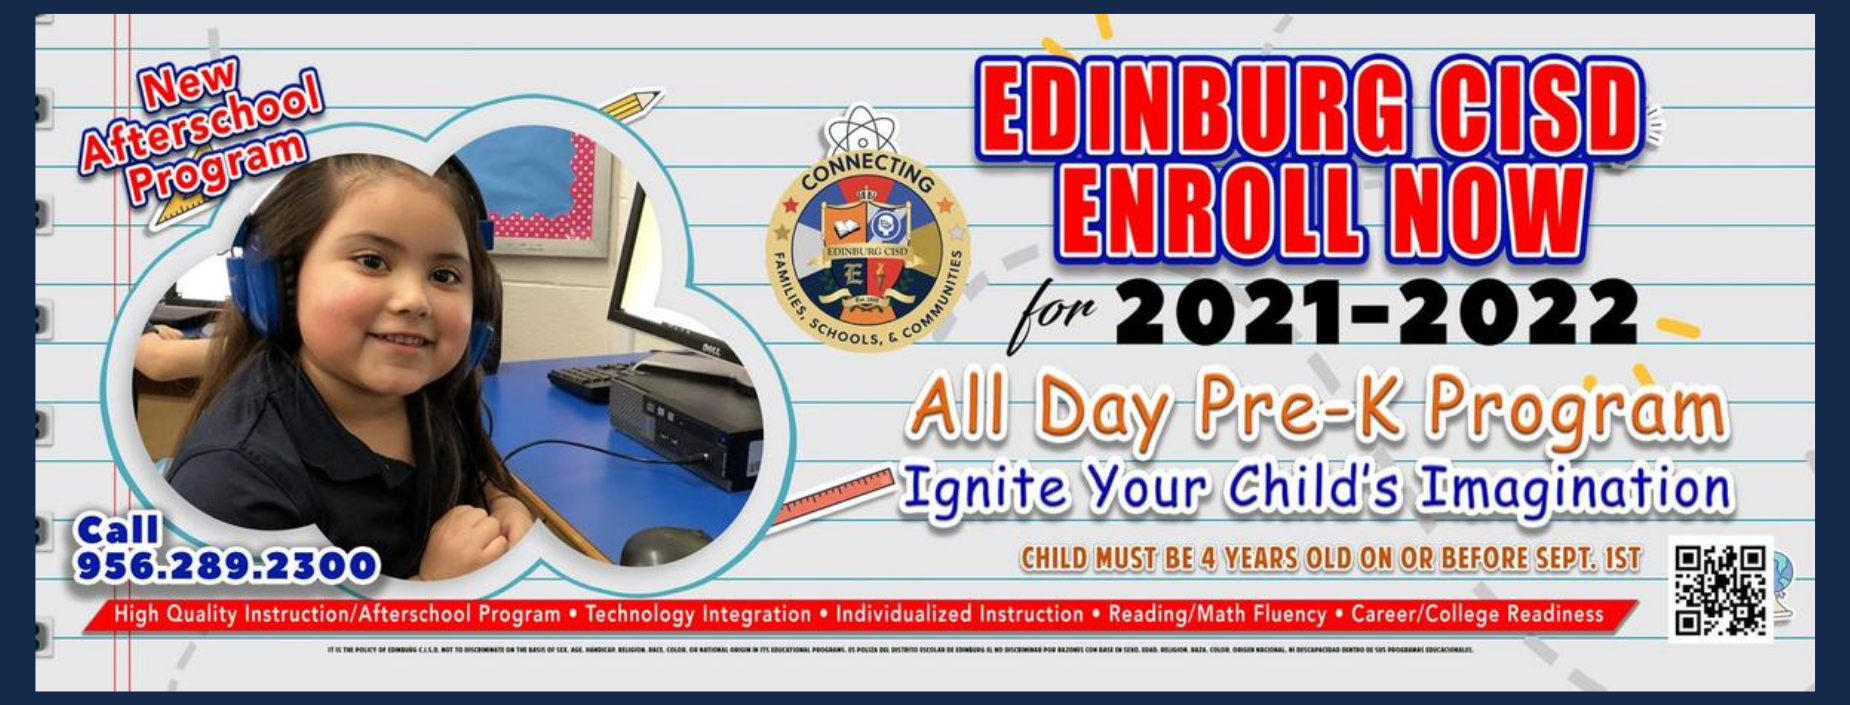 Click here to enroll in All day Pre-K Program